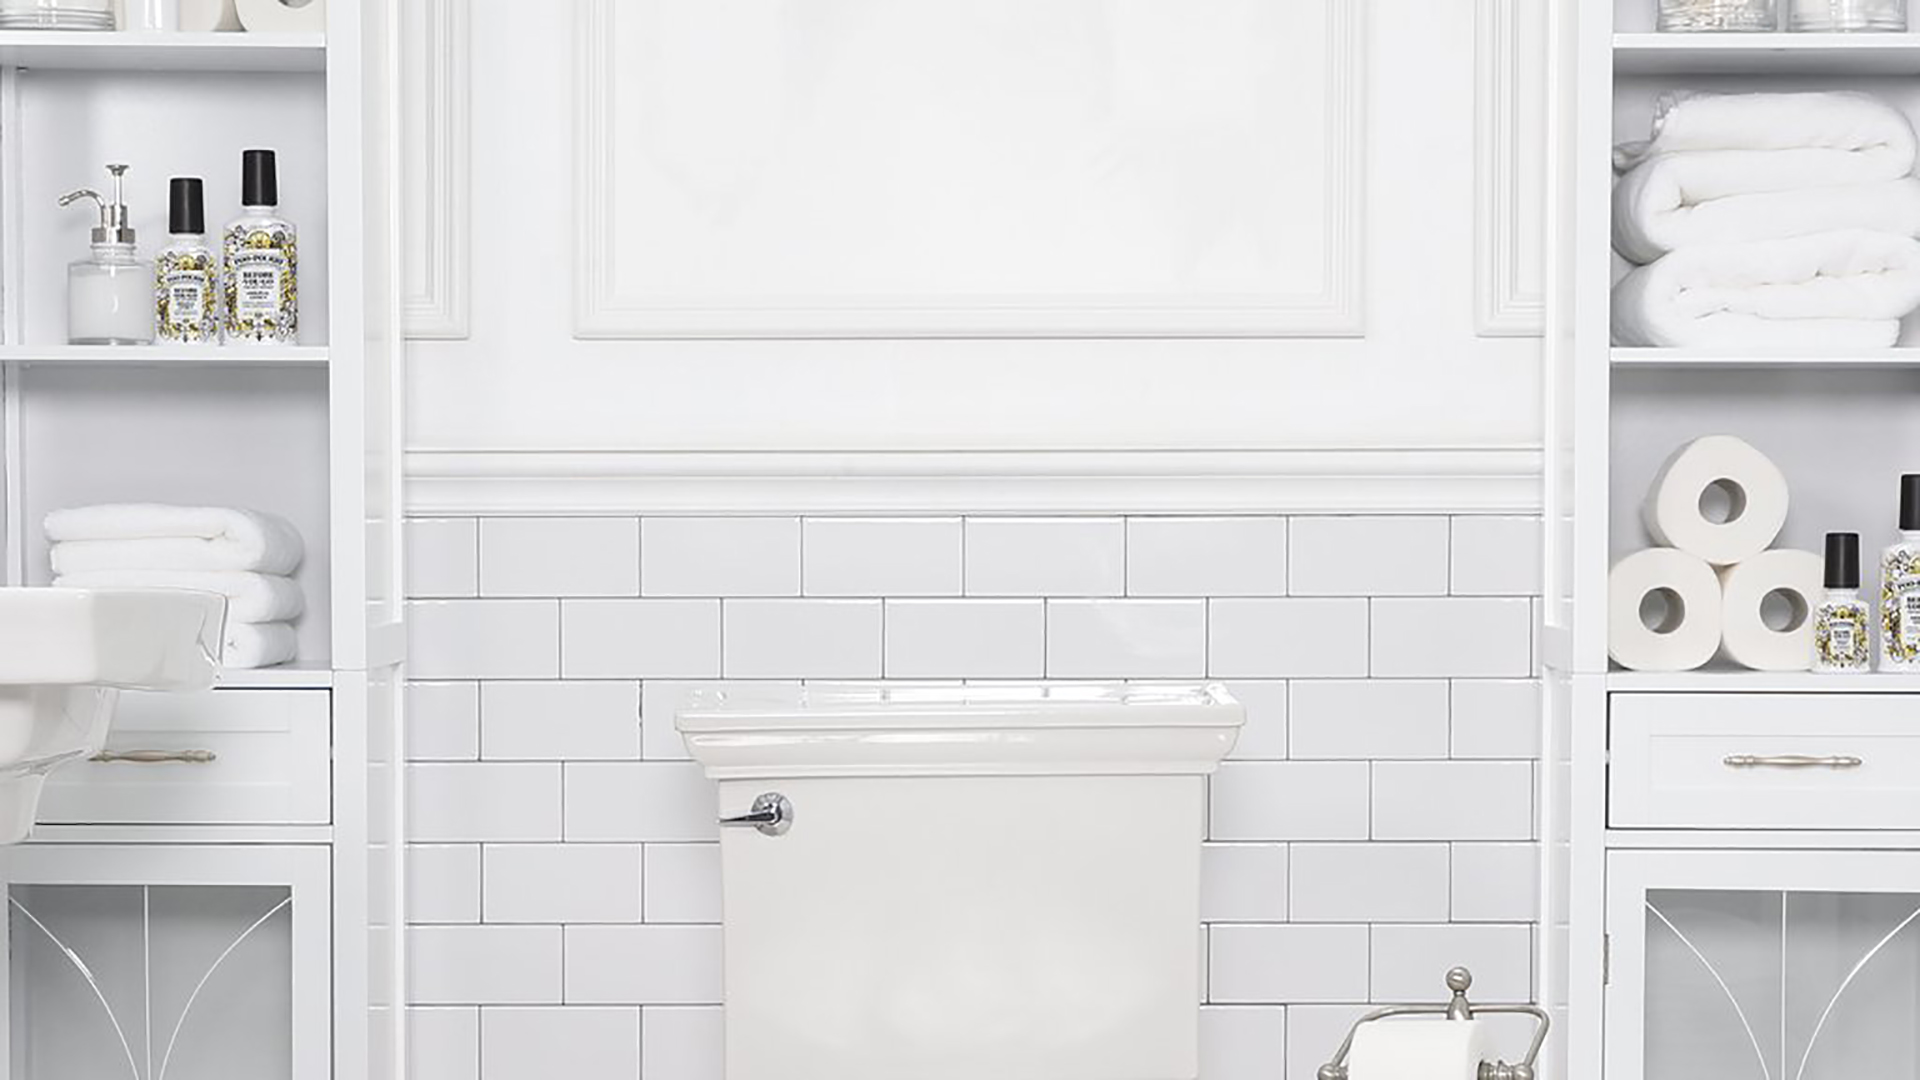 White bathroom. Virtual background to use on Zoom, Microsoft Teams, Skype, Google Meet, WebEx or any other compatible app.